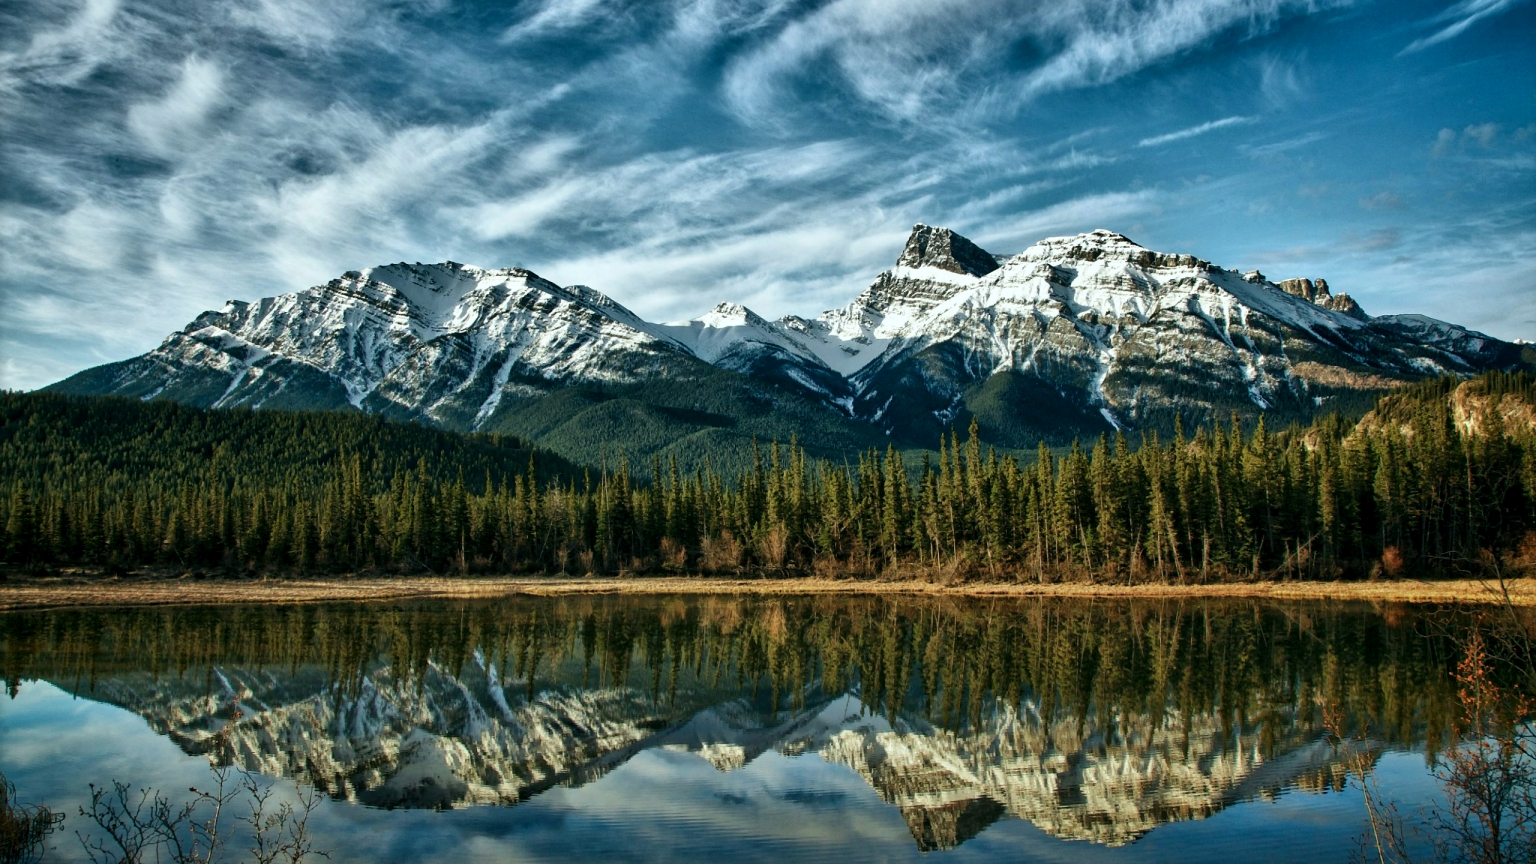 Alberta Mountains Canada for 1536 x 864 HDTV resolution